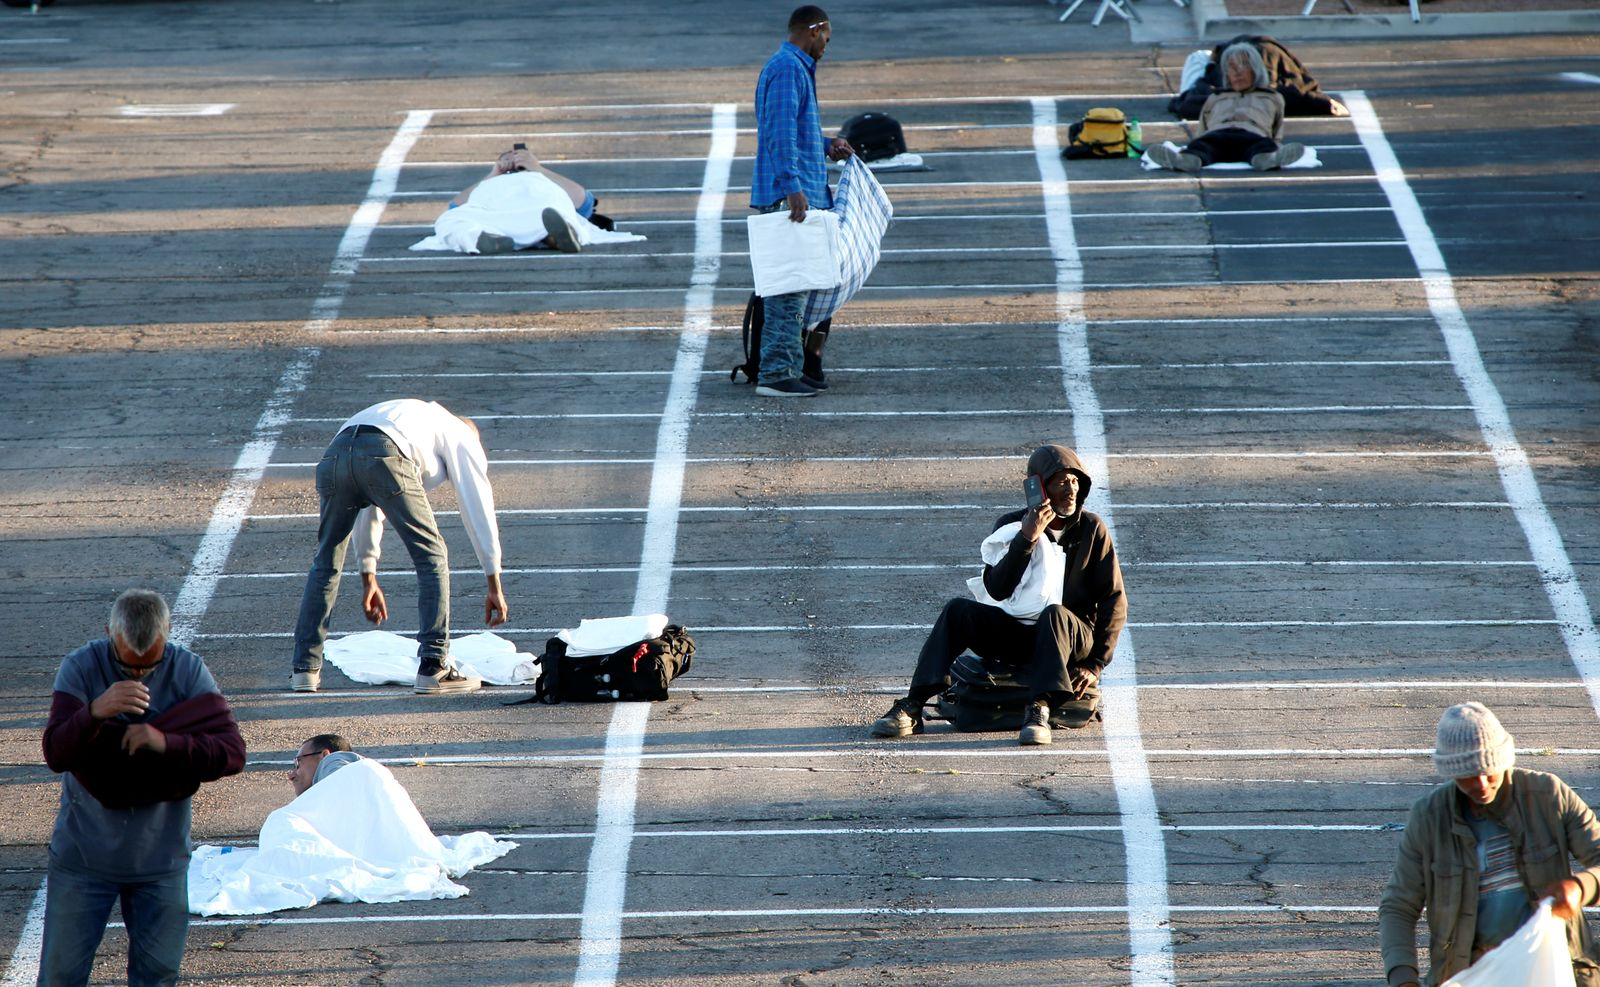 Homeless people get settled in a temporary parking lot with spaces marked for social distancing in Las Vegas